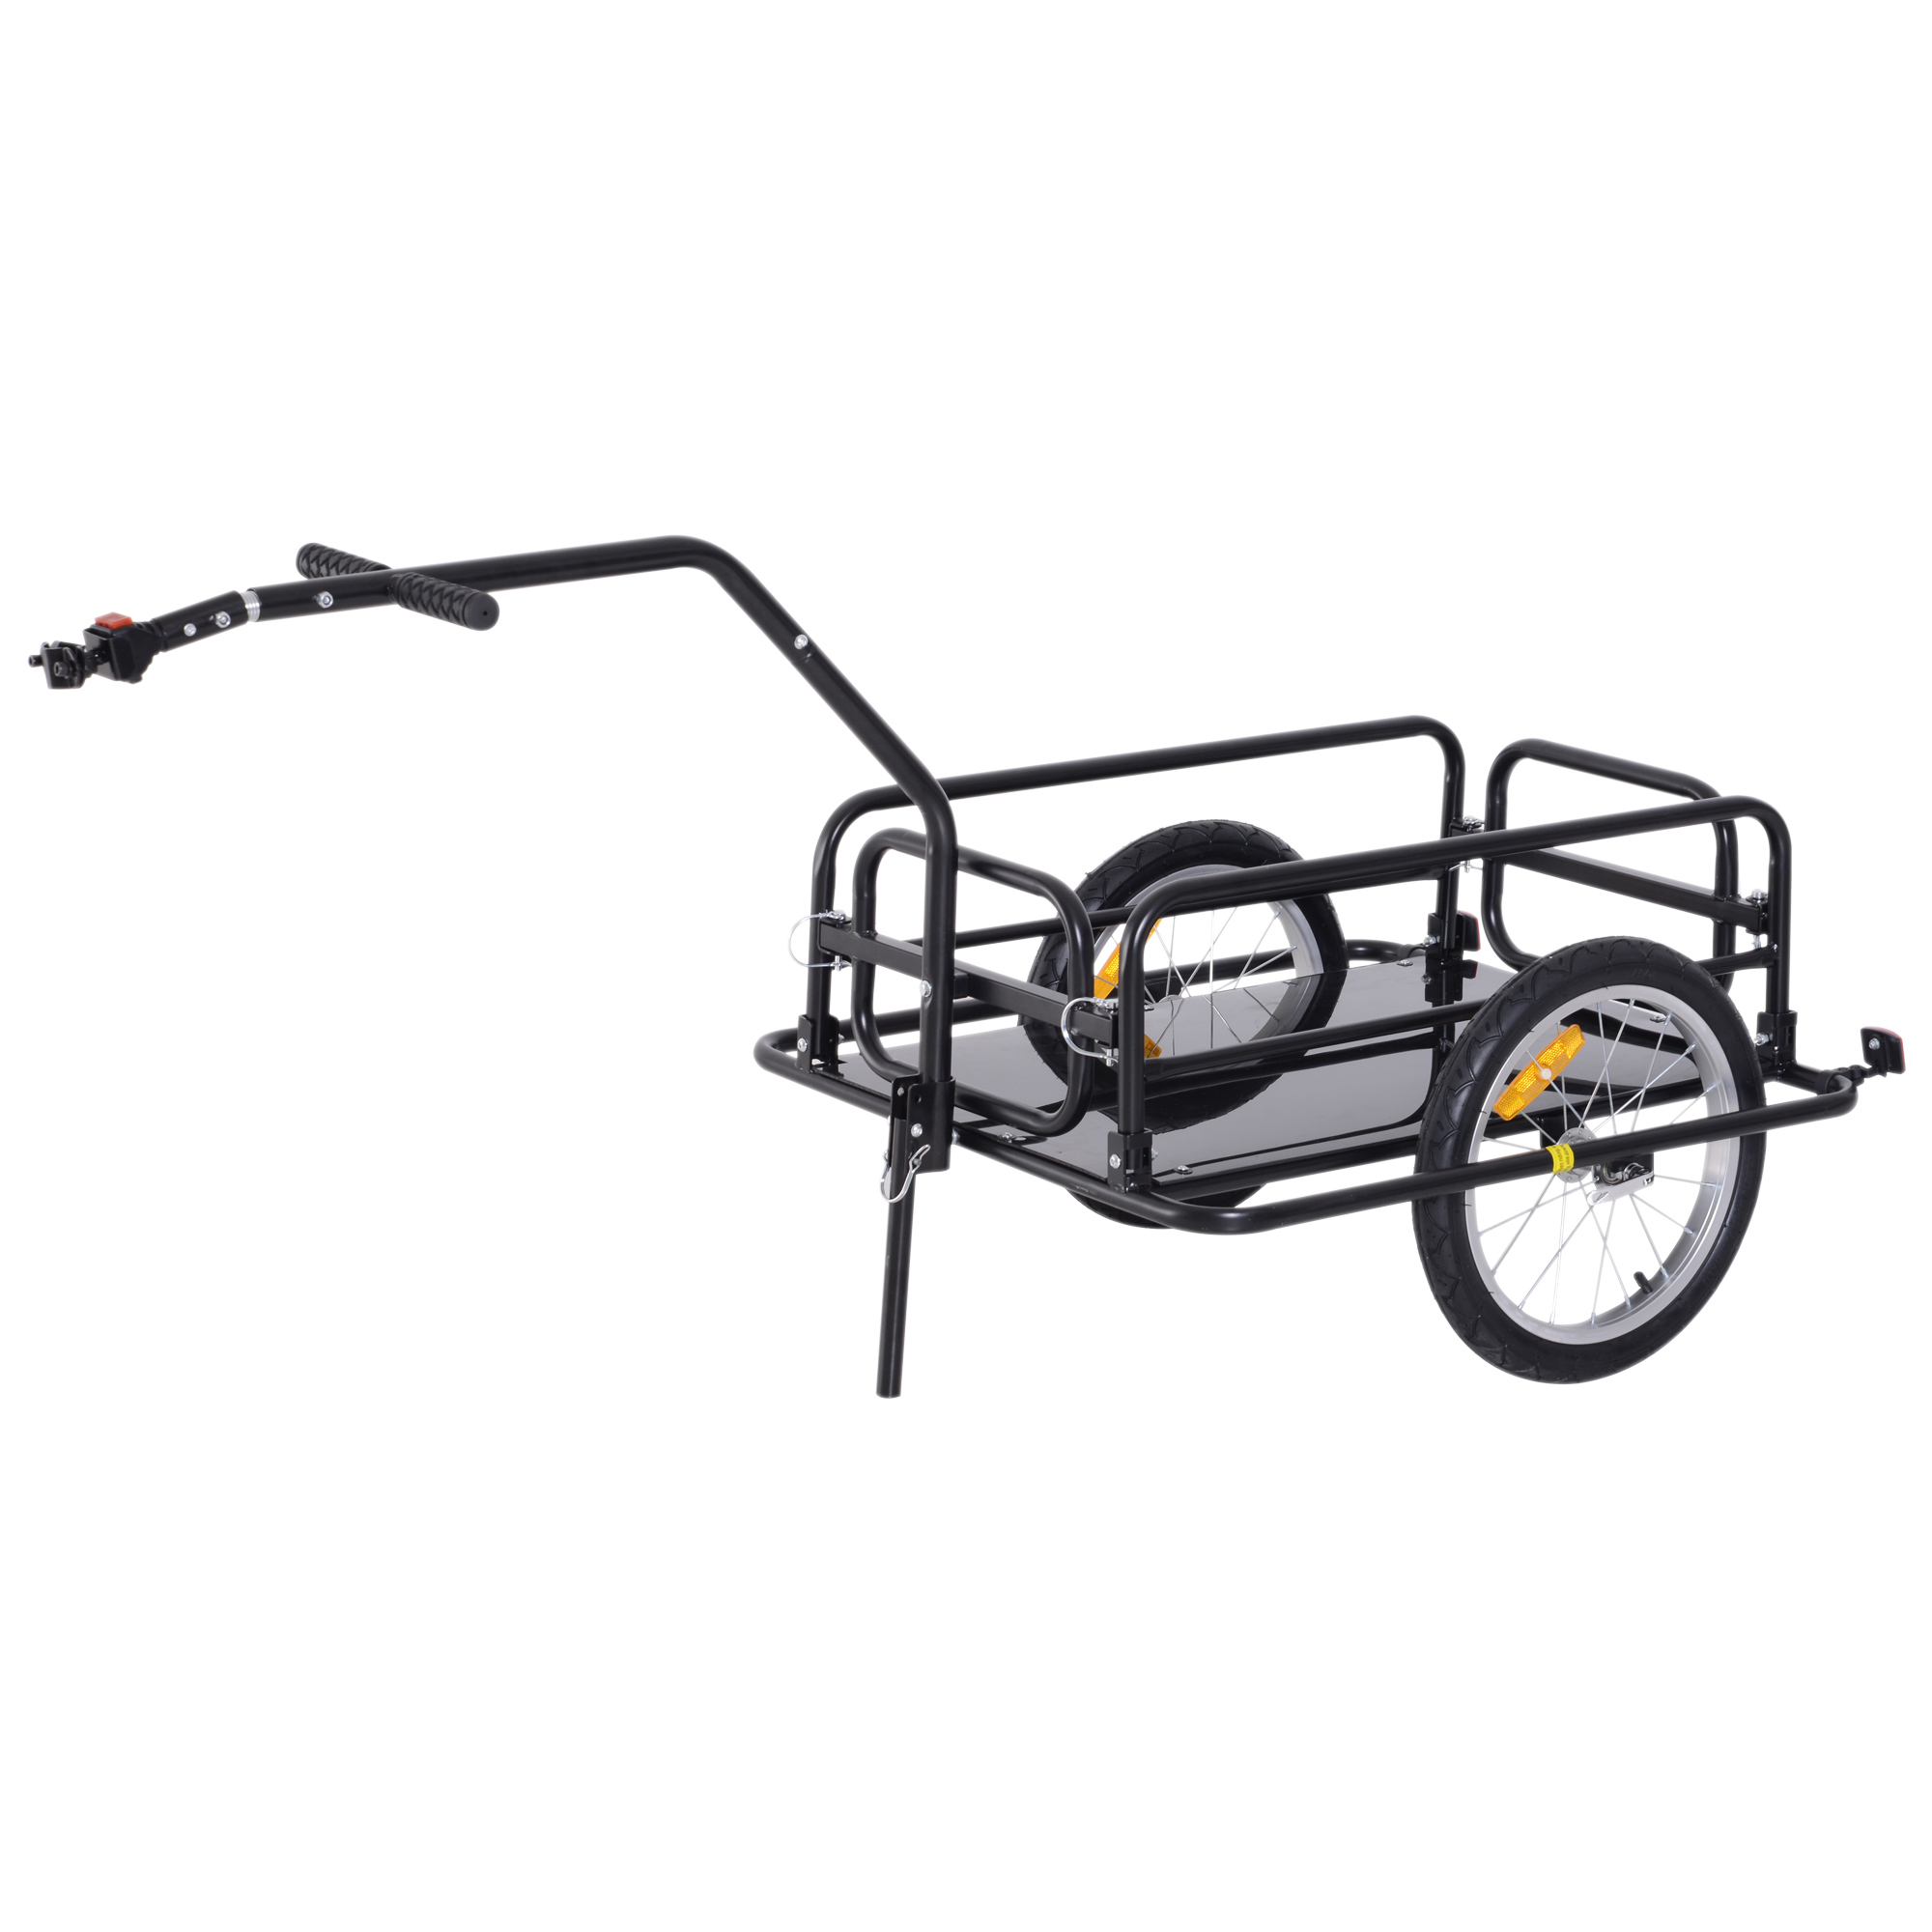 HOMCOM Cart Trailer Cargo Bike Folding Items Reach 40kg For Bicycle 155x71.5x77cm